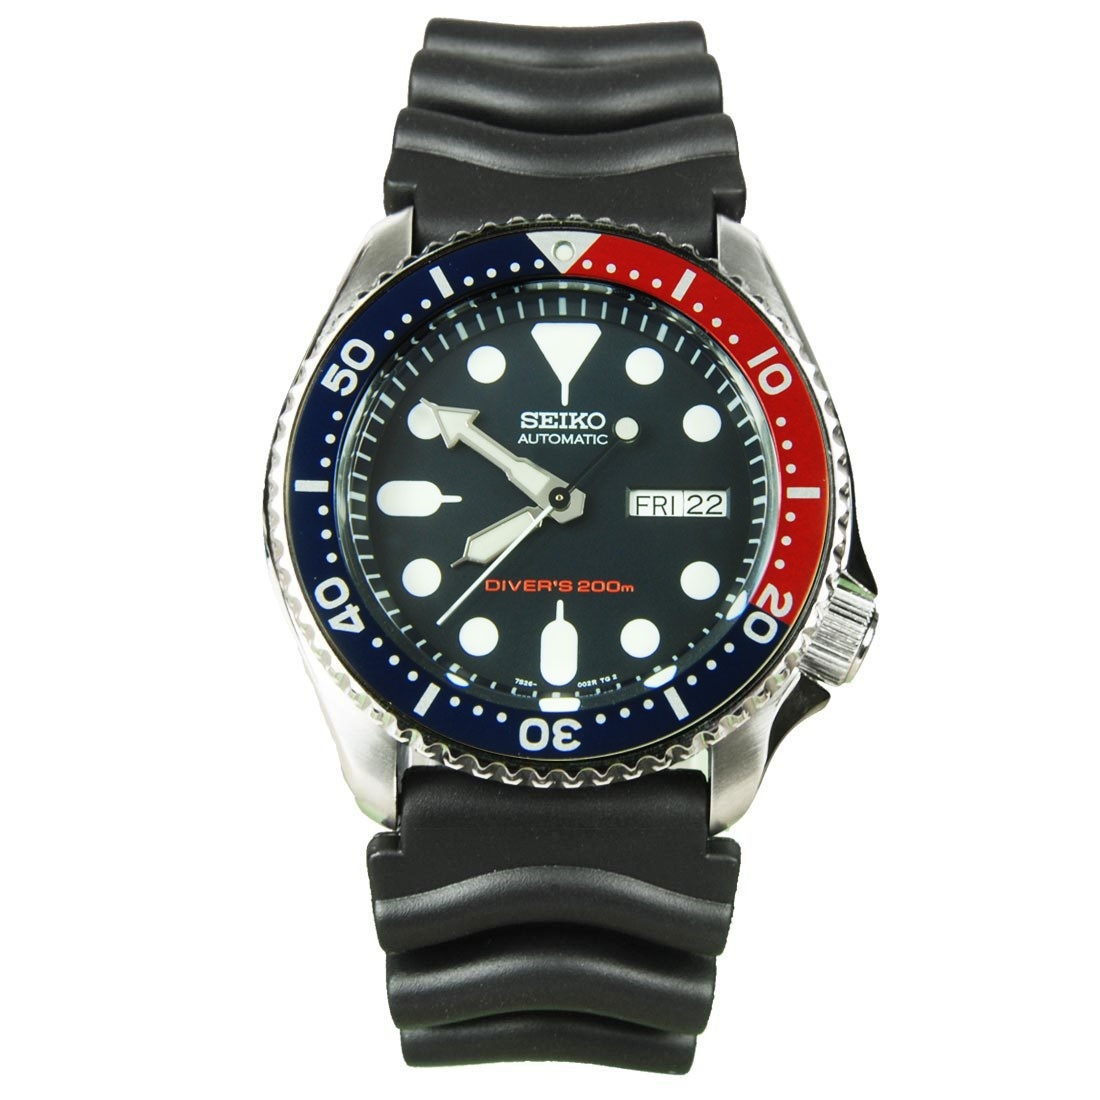 Seiko automatic watches SKX009